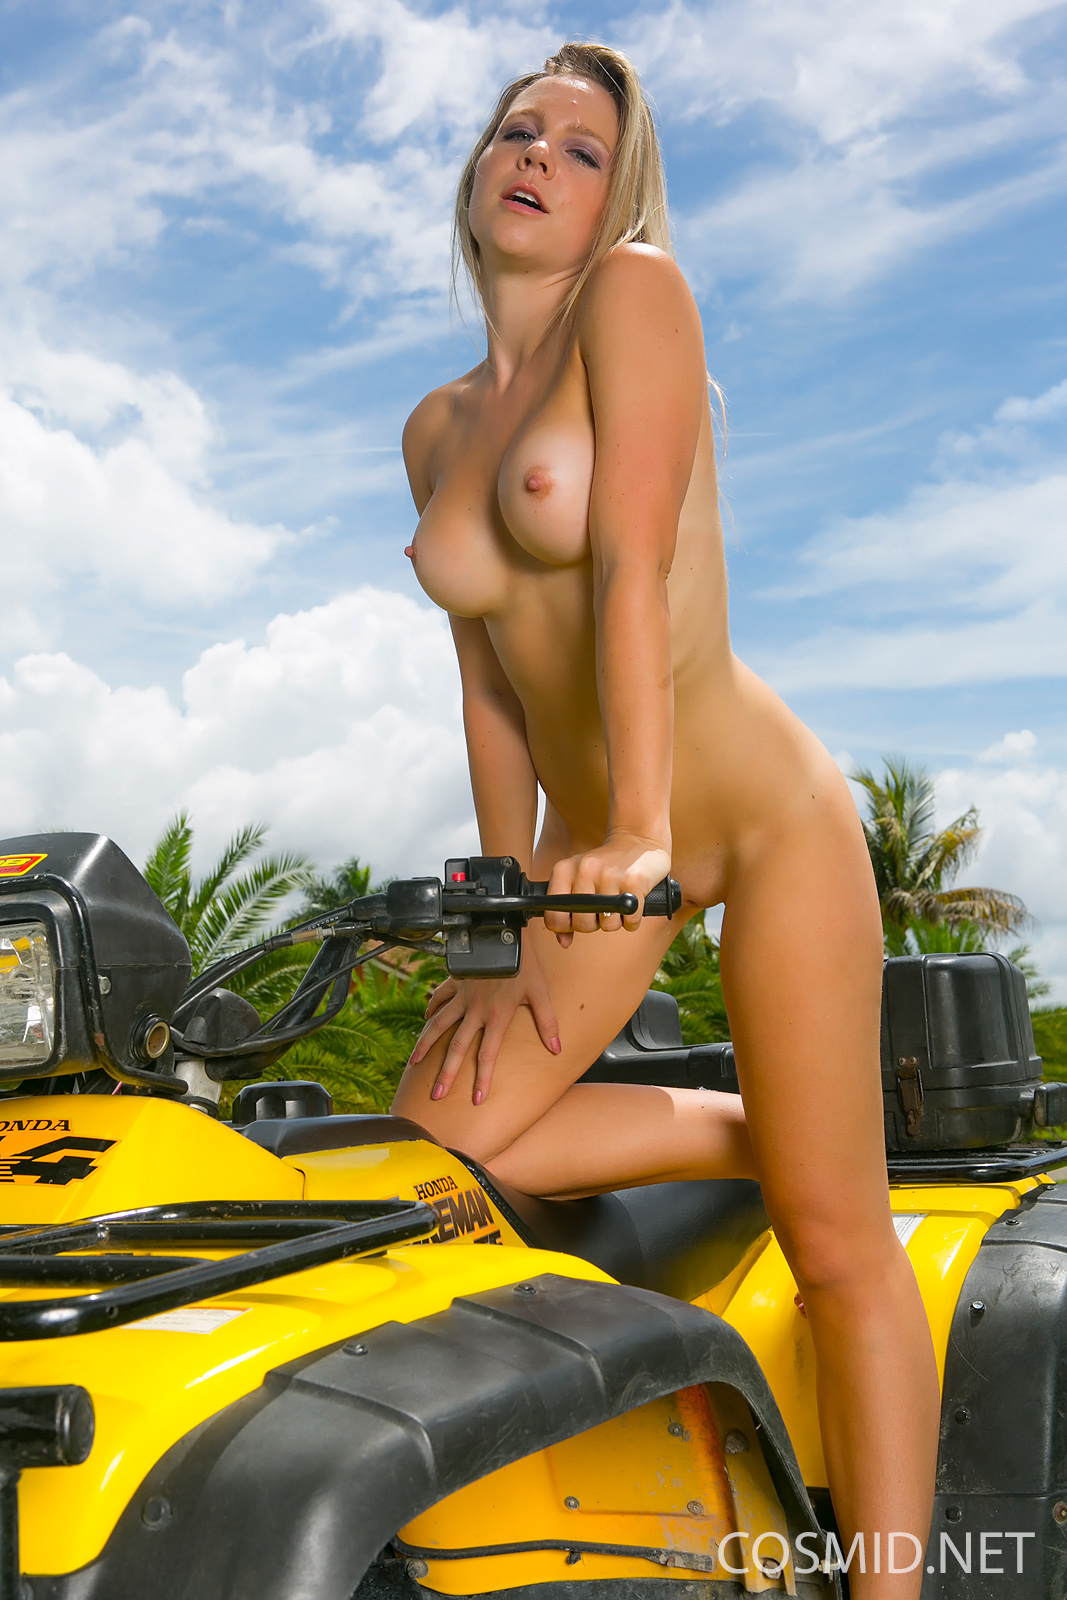 Topless chick on atv, the foundry cams redheadtures